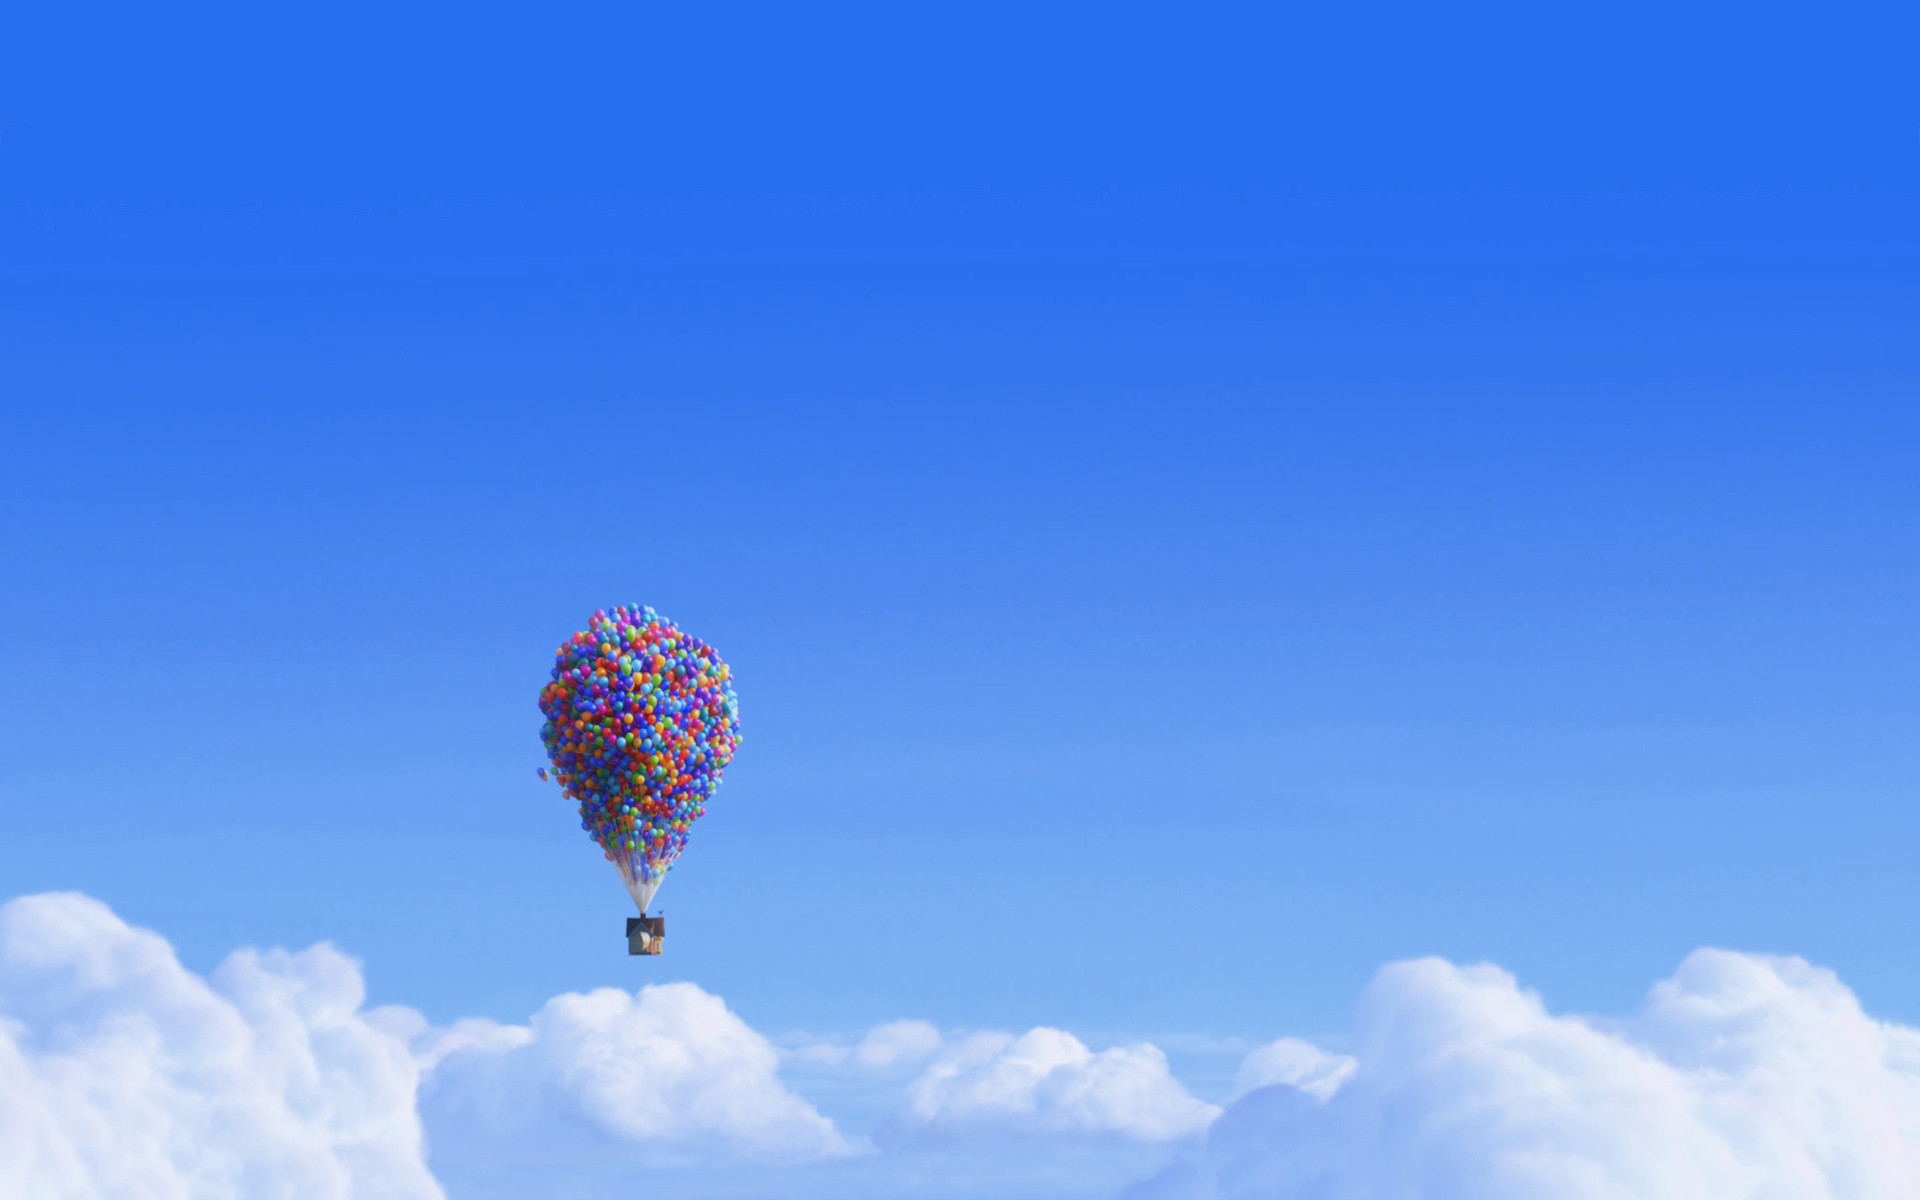 1920x1200  Pixar Up Movie. How to set wallpaper on your desktop? Click the  download link from above and set the wallpaper on the desktop from your OS.